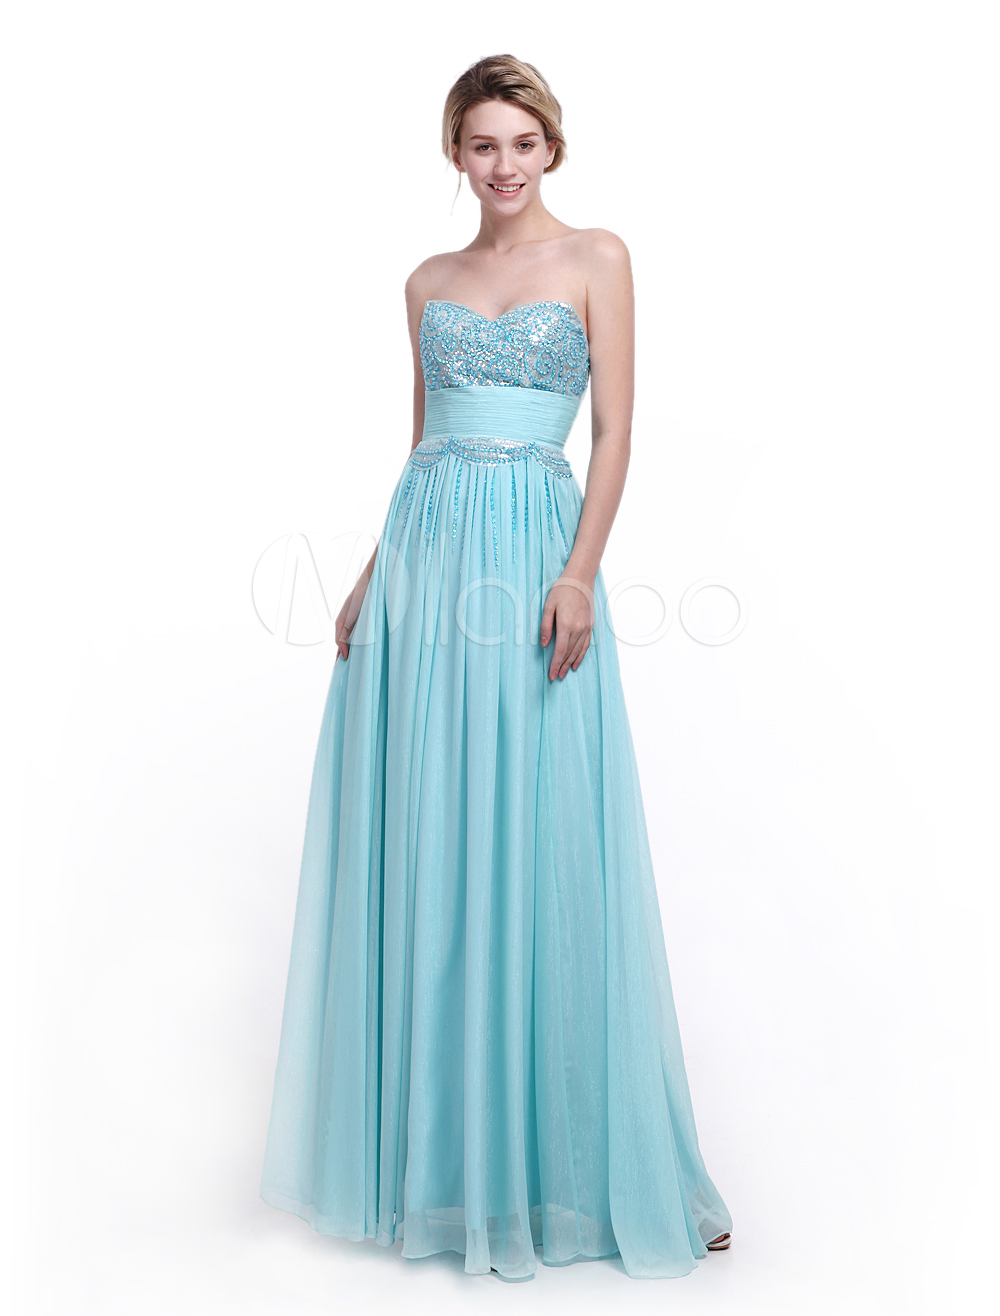 Mint Green Prom Dress Sweetheart Neck with Ruched A-line Bright Silk Chiffon Skirt Milanoo (Wedding Prom Dresses) photo